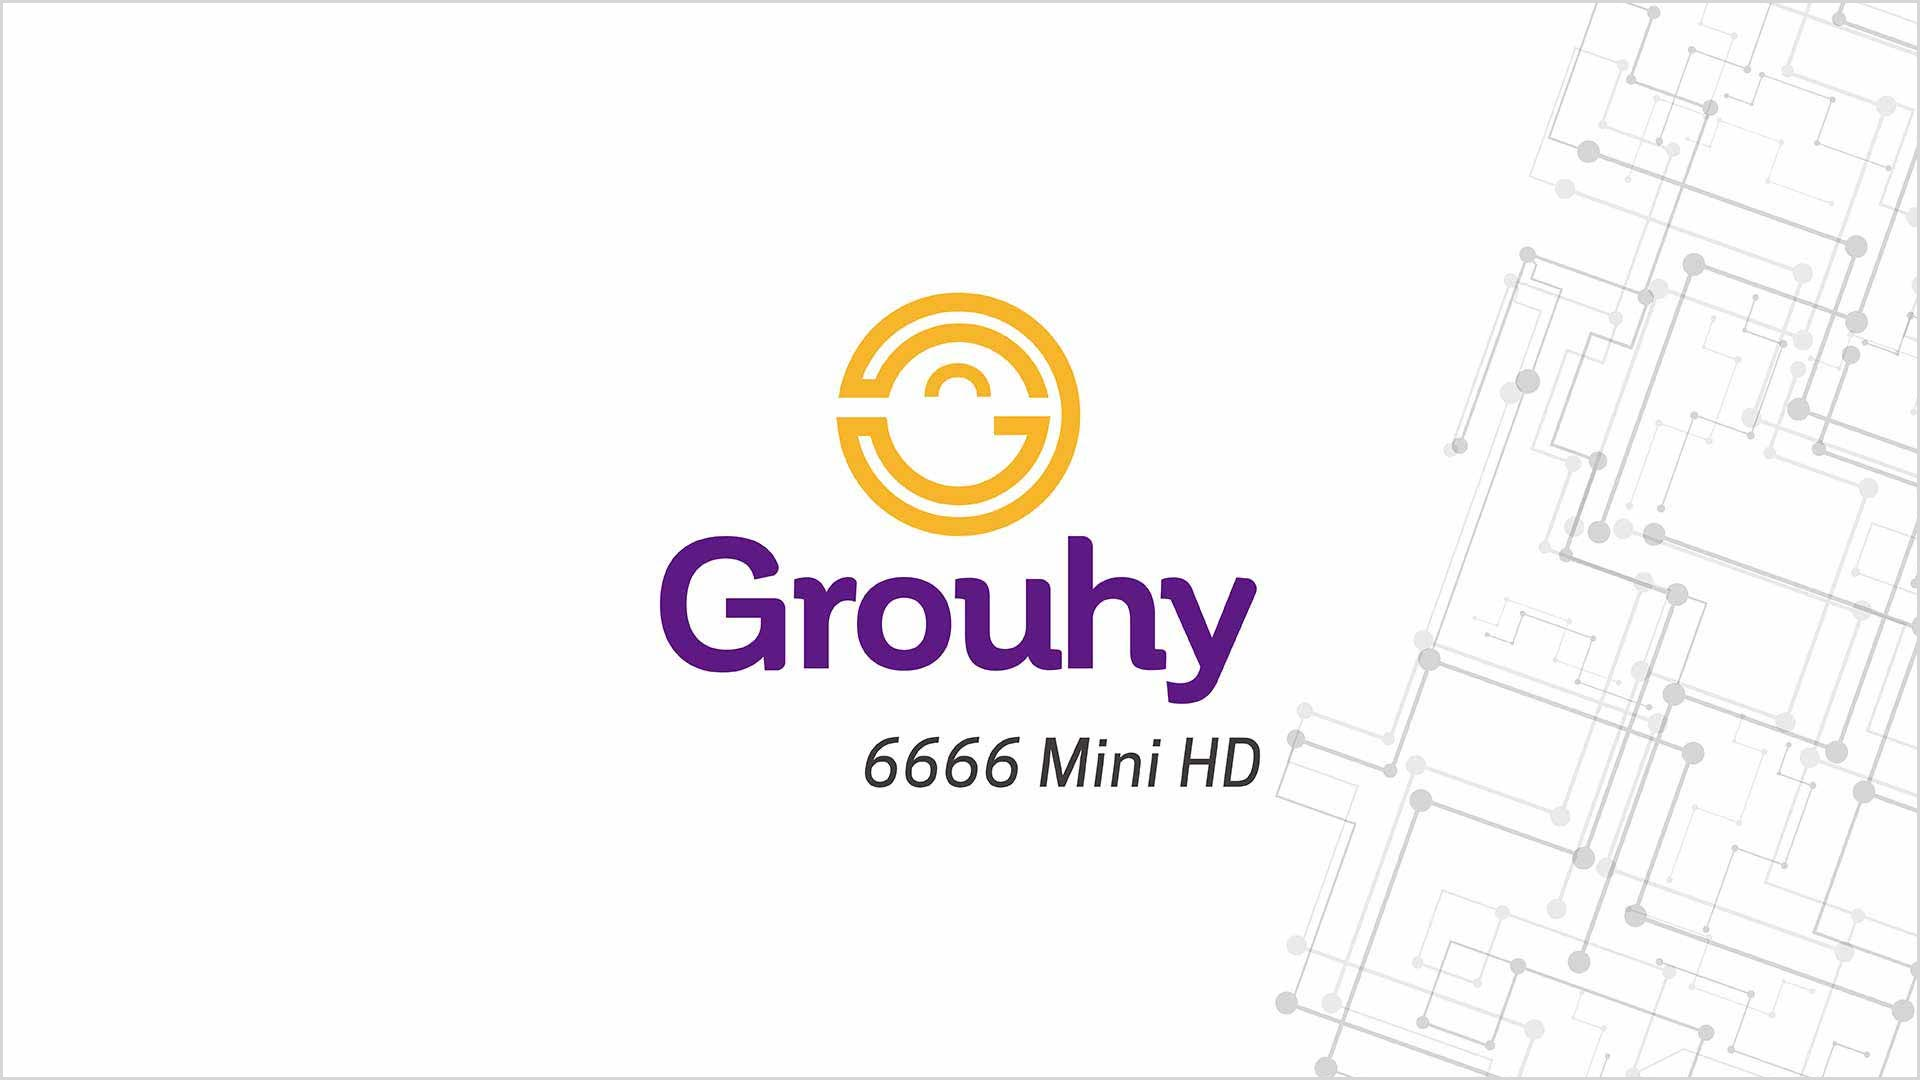 Download Software Grouhy 6666 Mini HD New Update Firmware Receiver